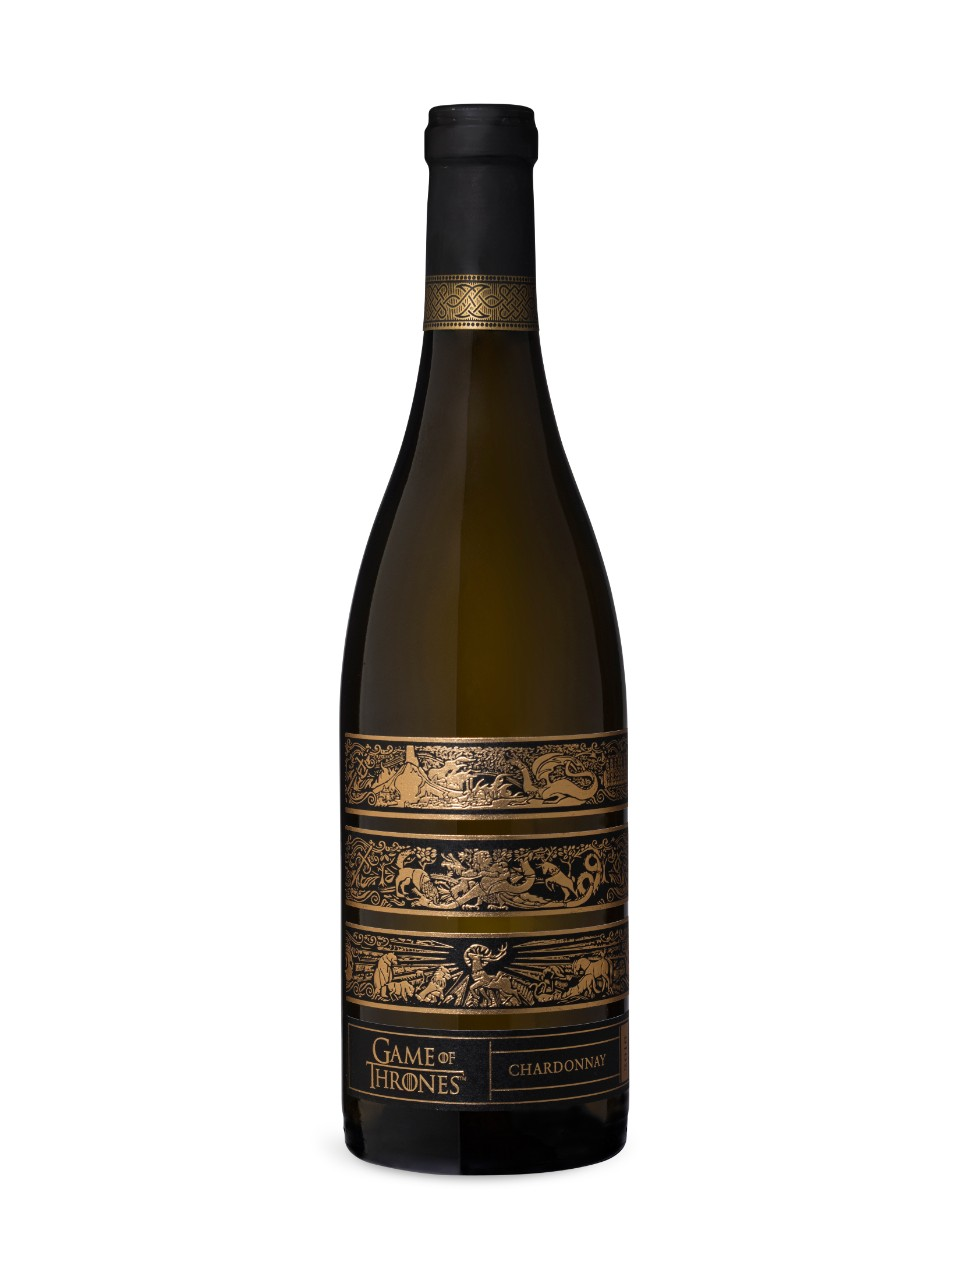 Game Of Thrones Chardonnay from LCBO